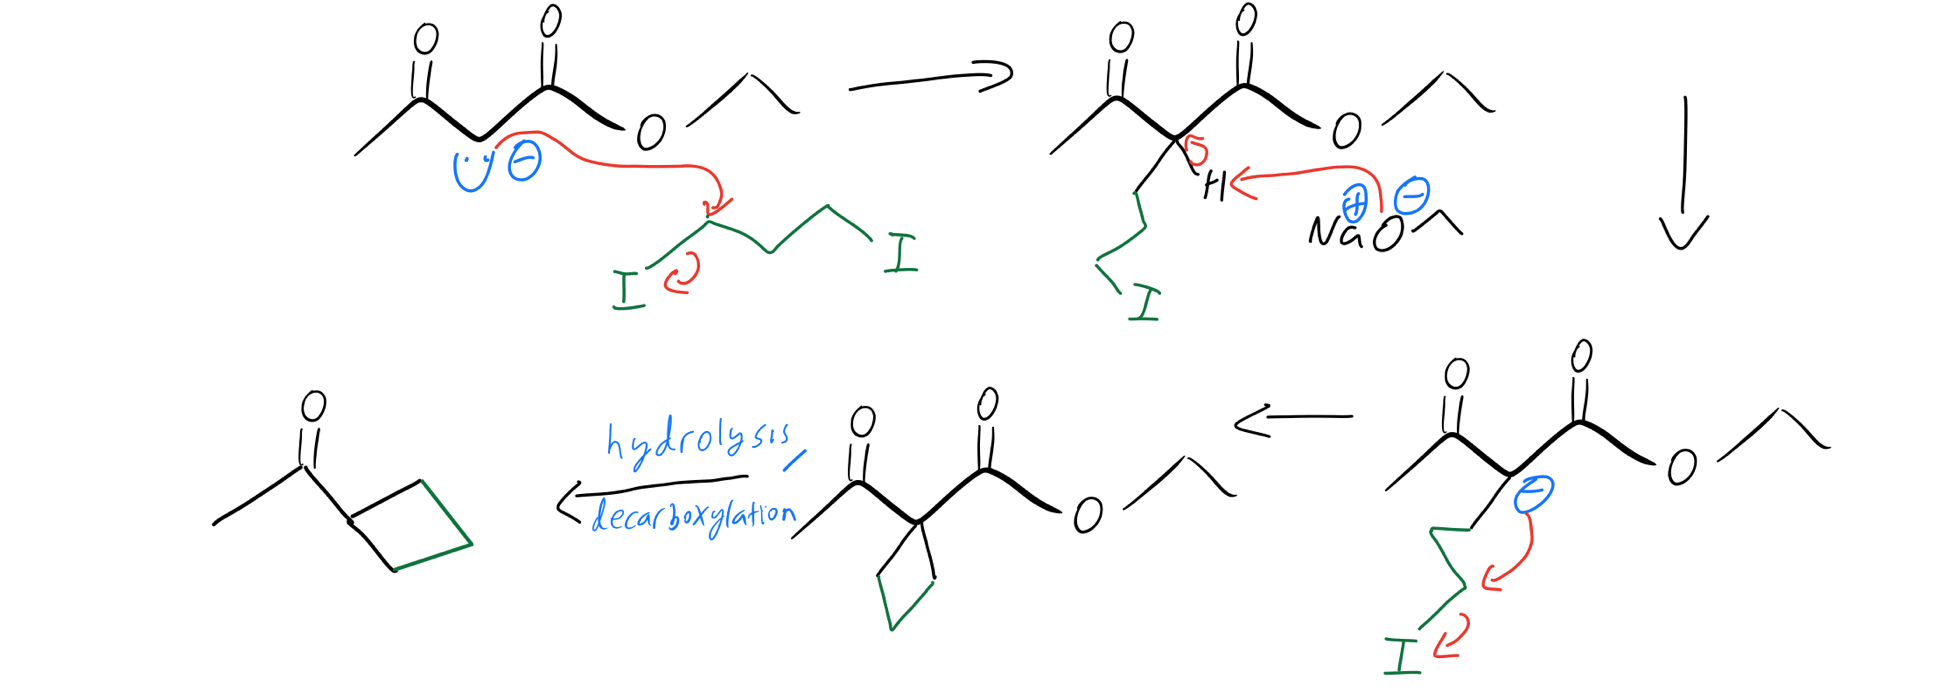 Cyclic-alkylation-mechanism